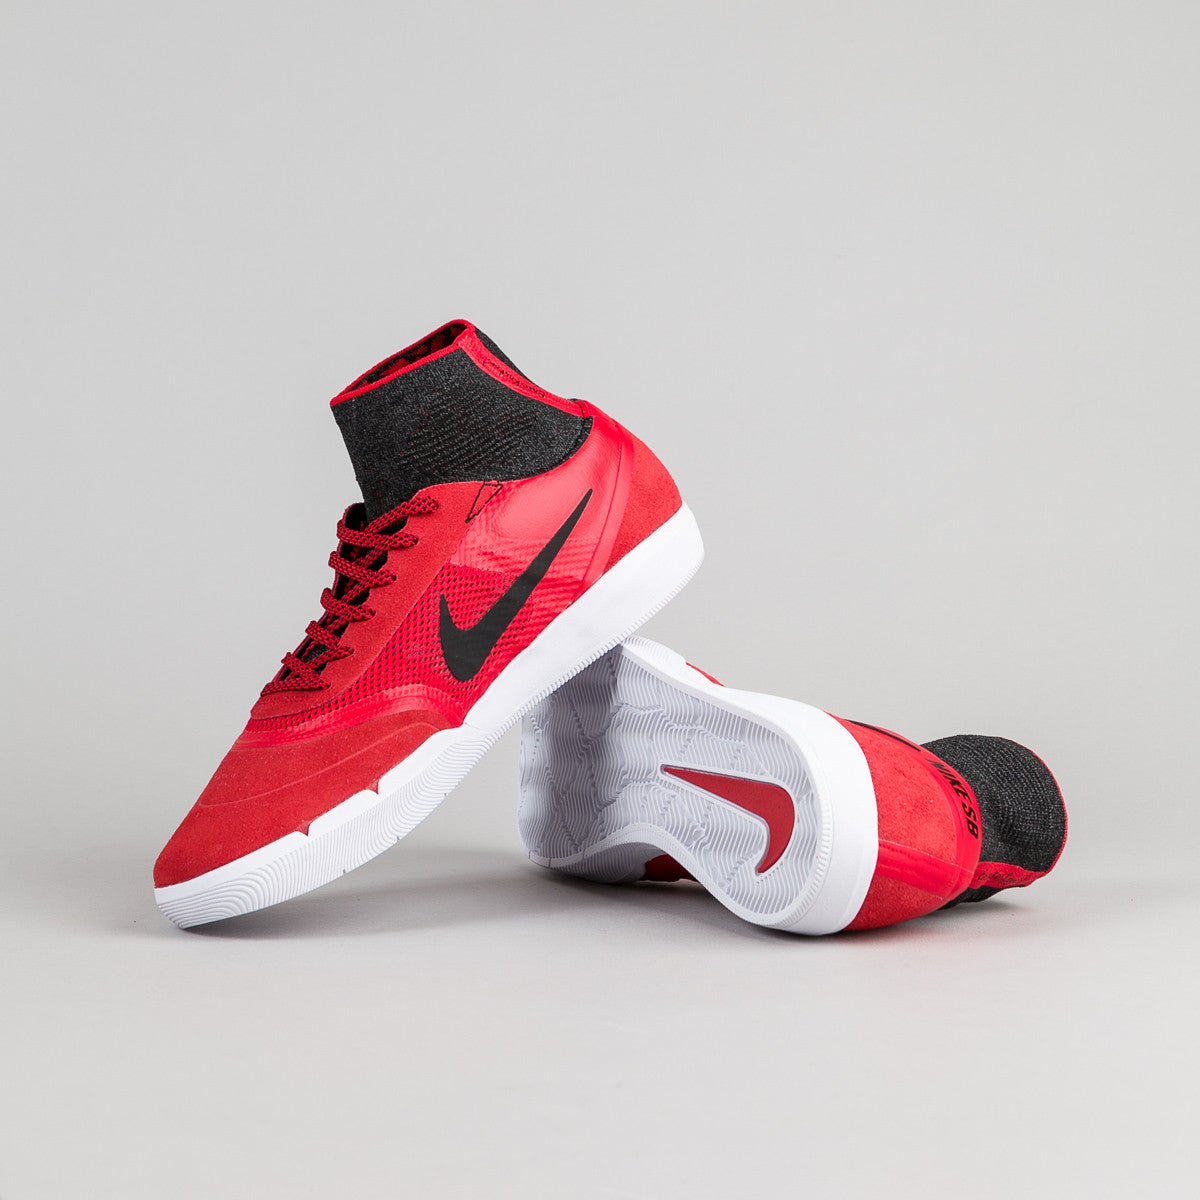 Nike SB Hyperfeel Koston 3 Shoes - University Red / Black - White